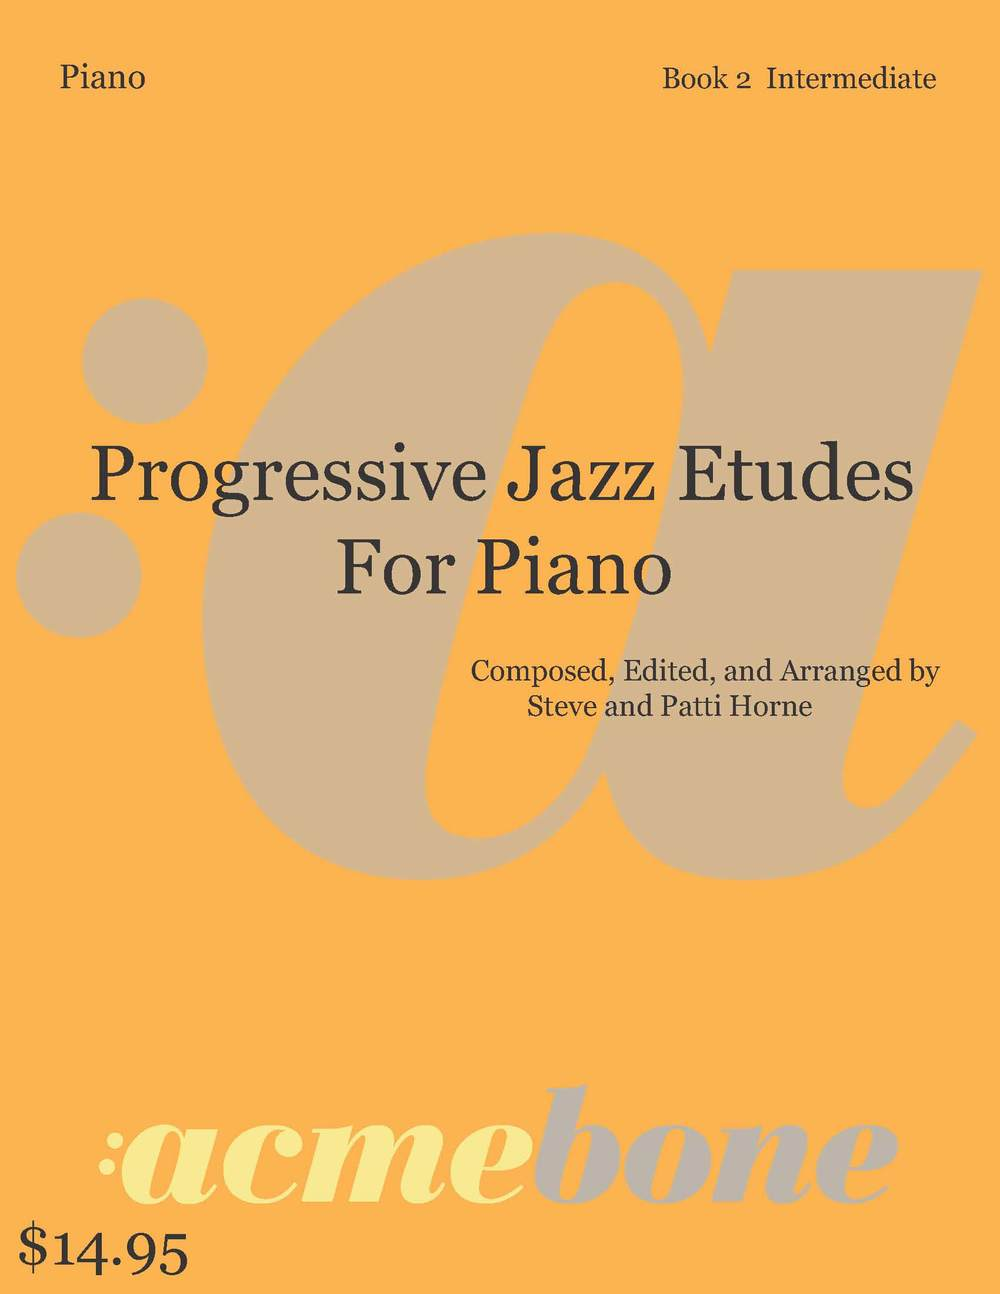 Piano Etudes_cover_book2_price.jpg